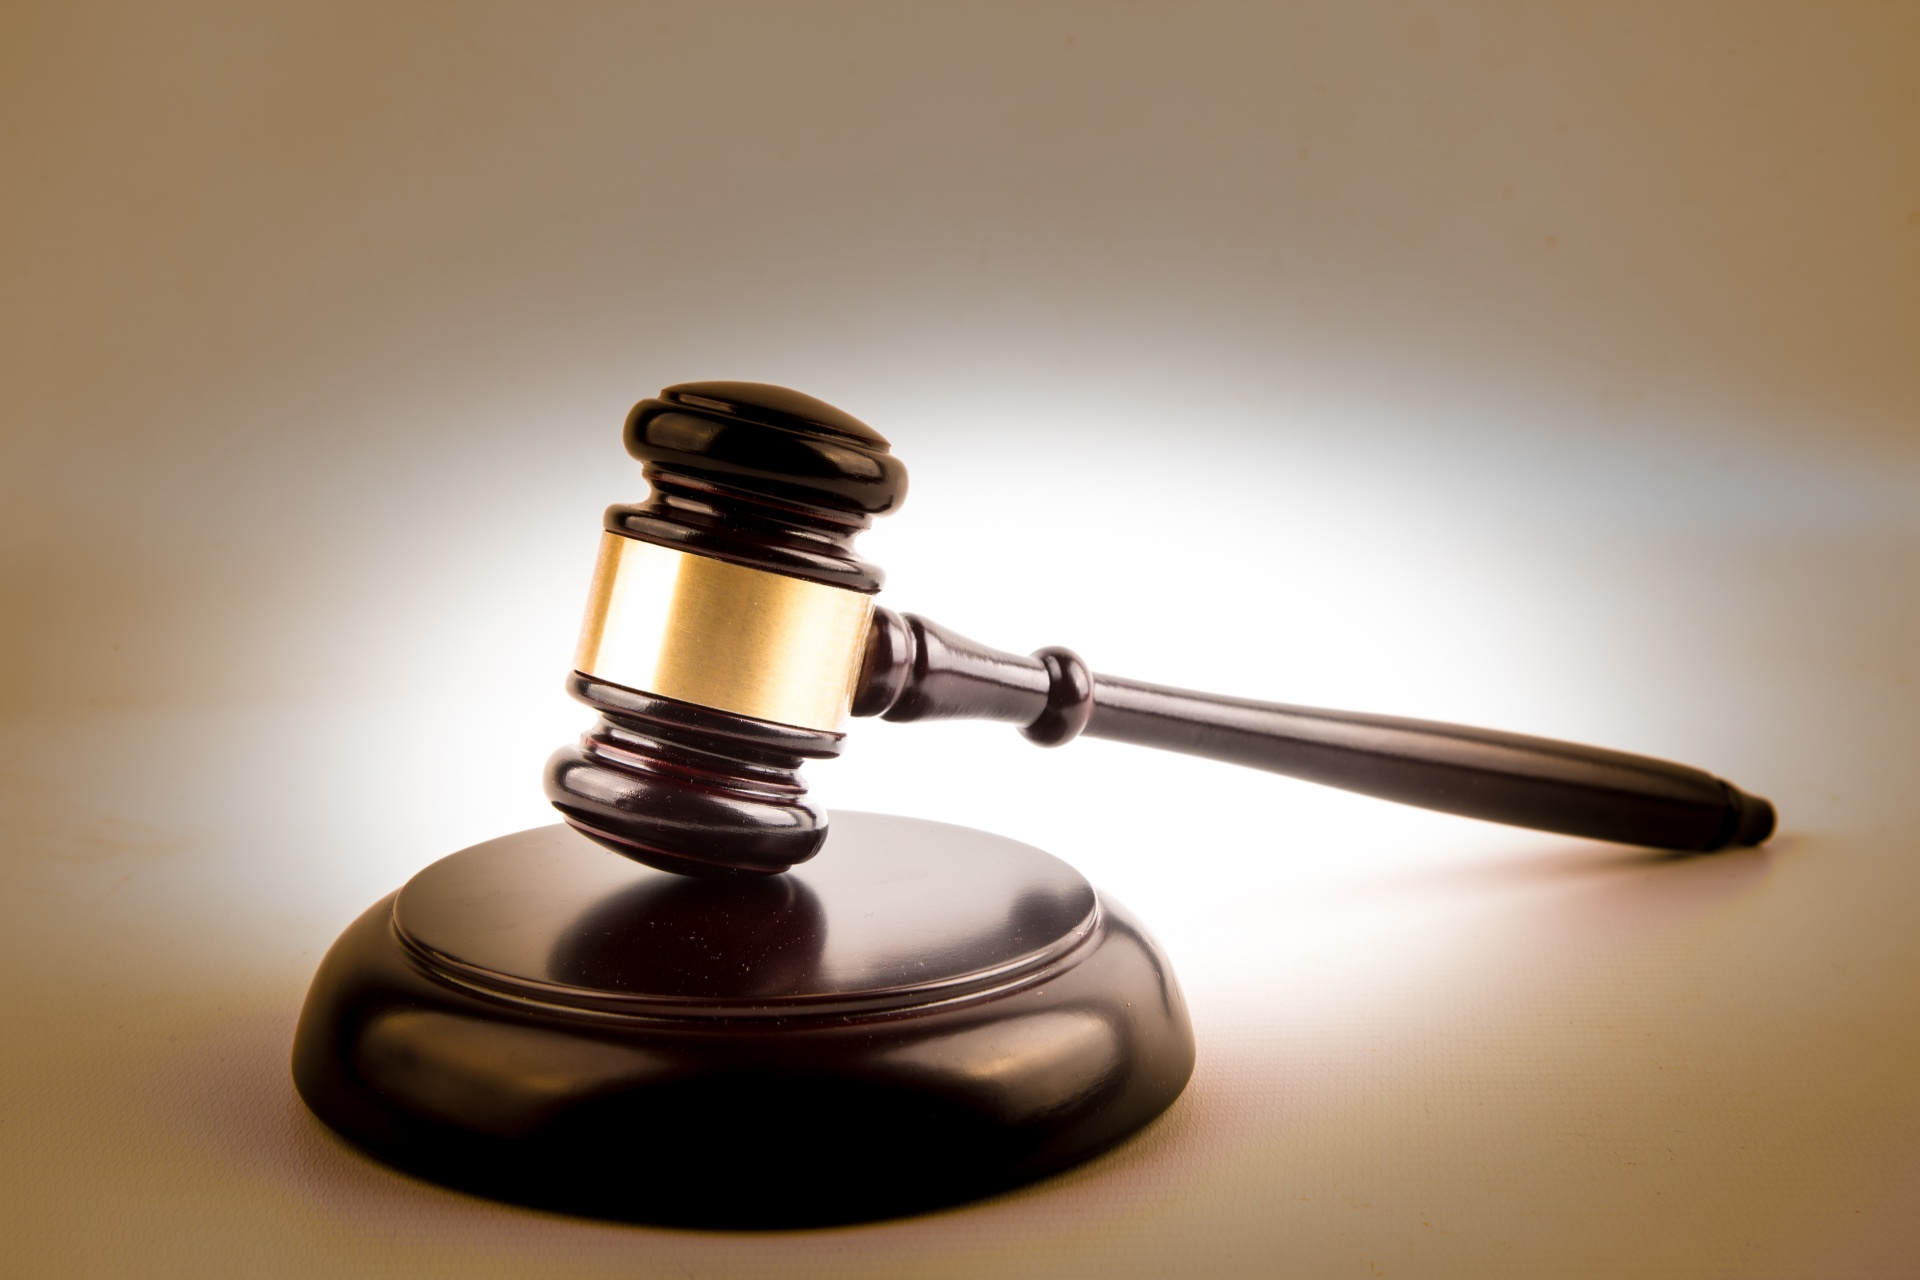 Mt. Vernon Man Sentenced Six Year on Reduced Meth Charge